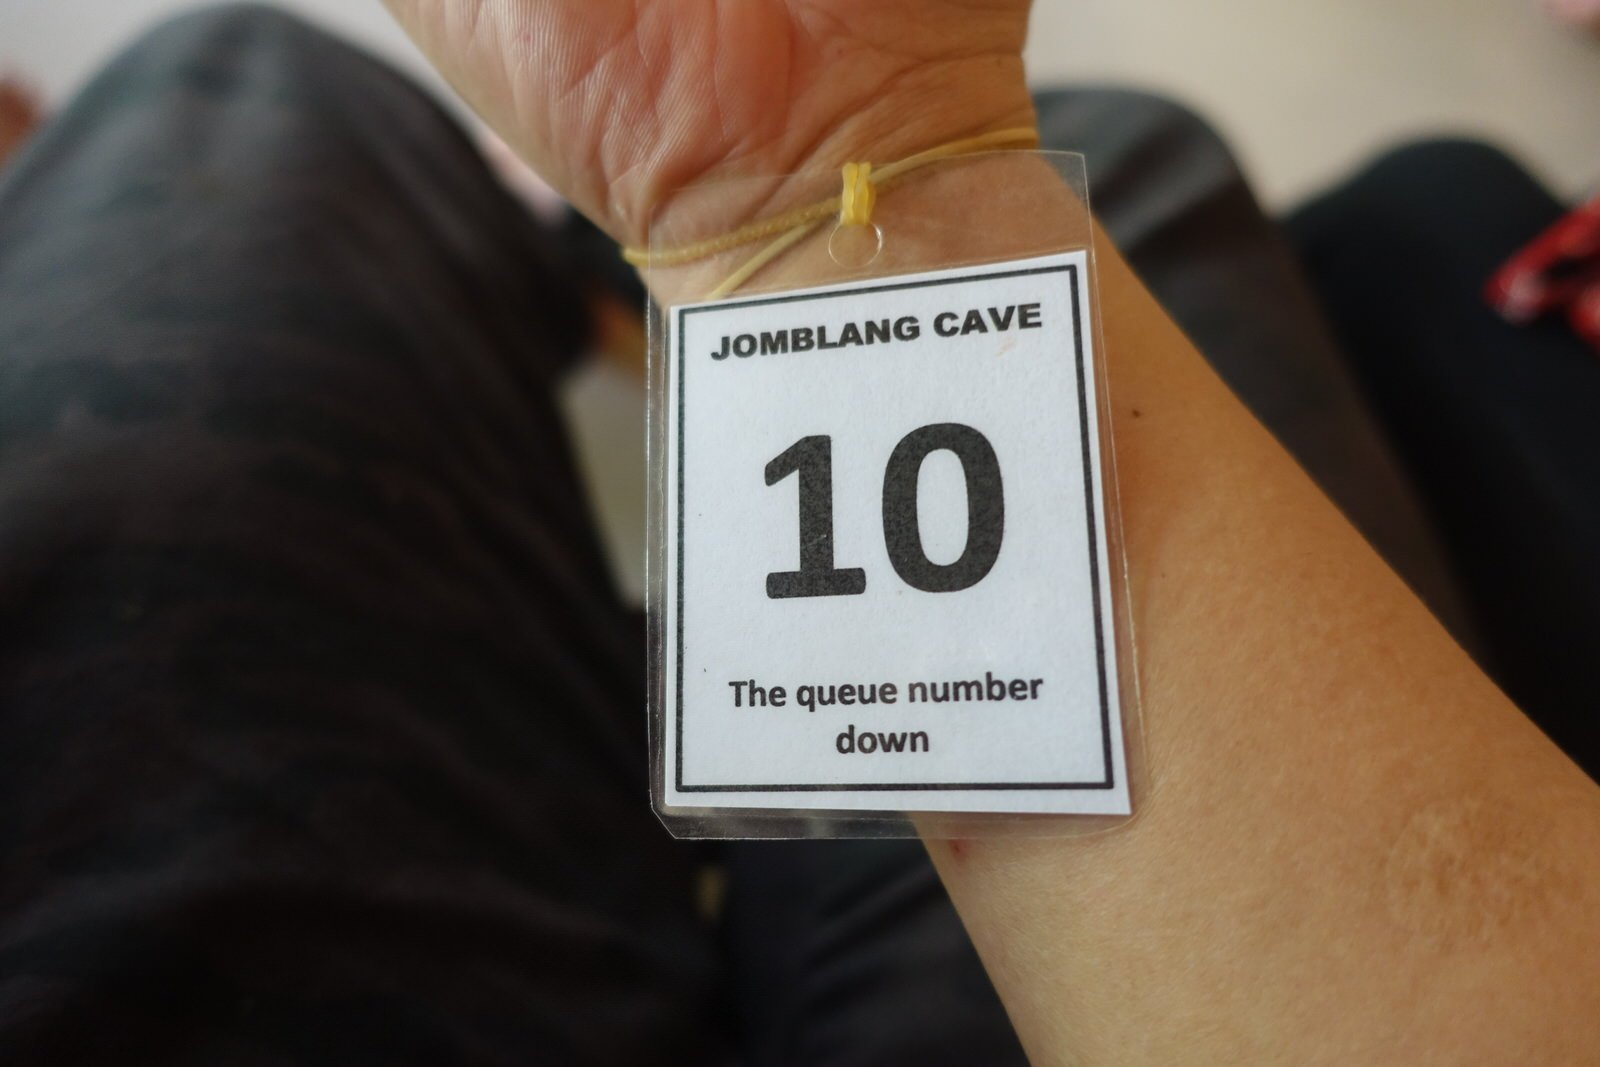 jomblang cave queue number